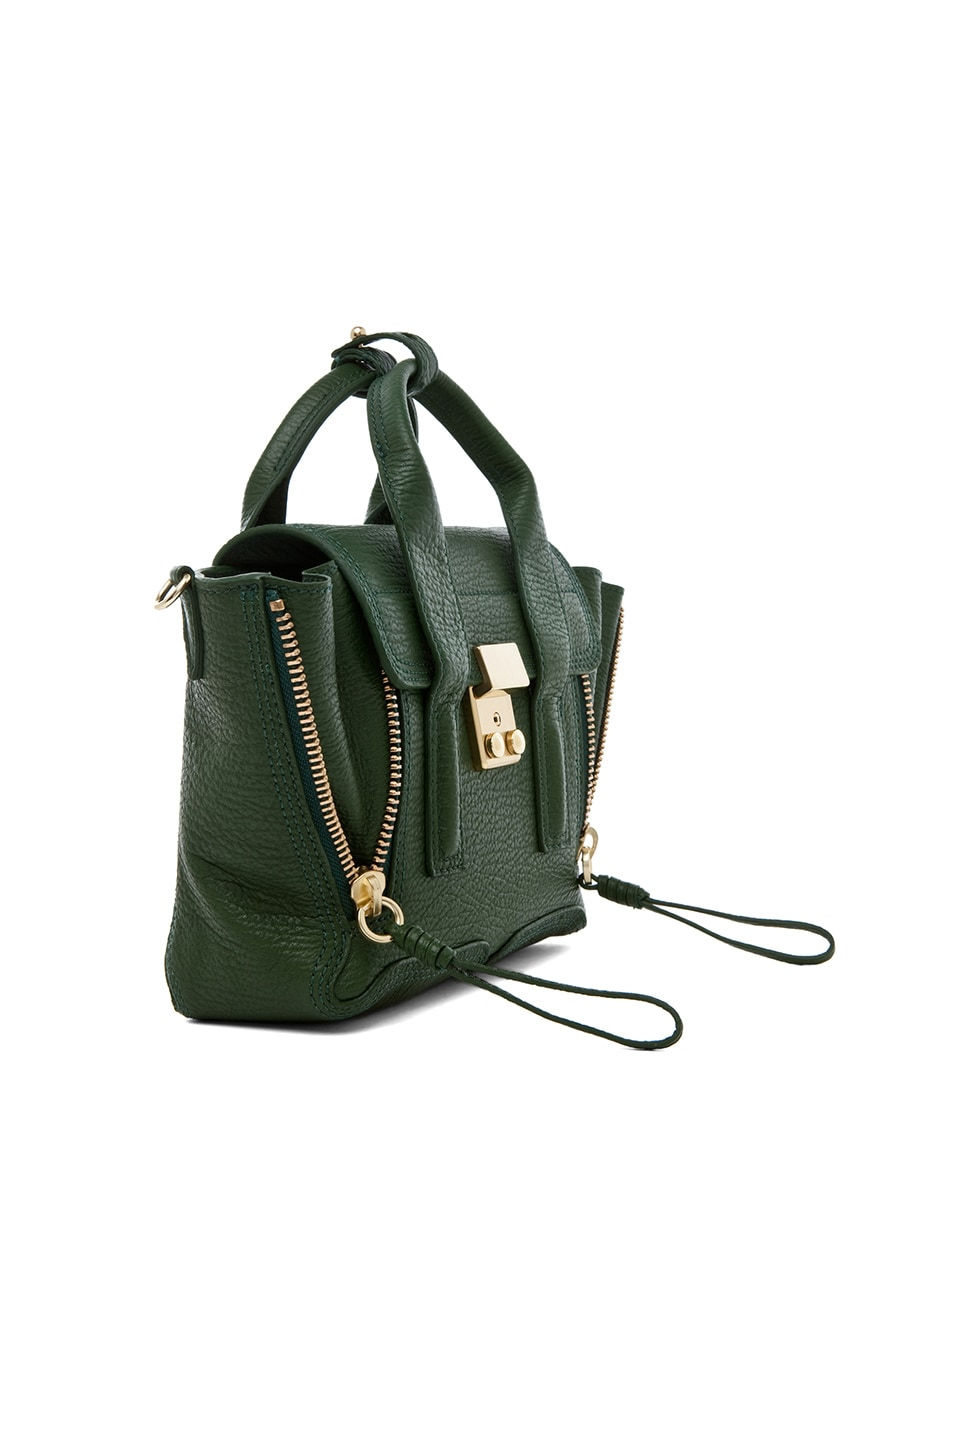 Image 3 of 3.1 phillip lim Mini Pashli Satchel in Jade